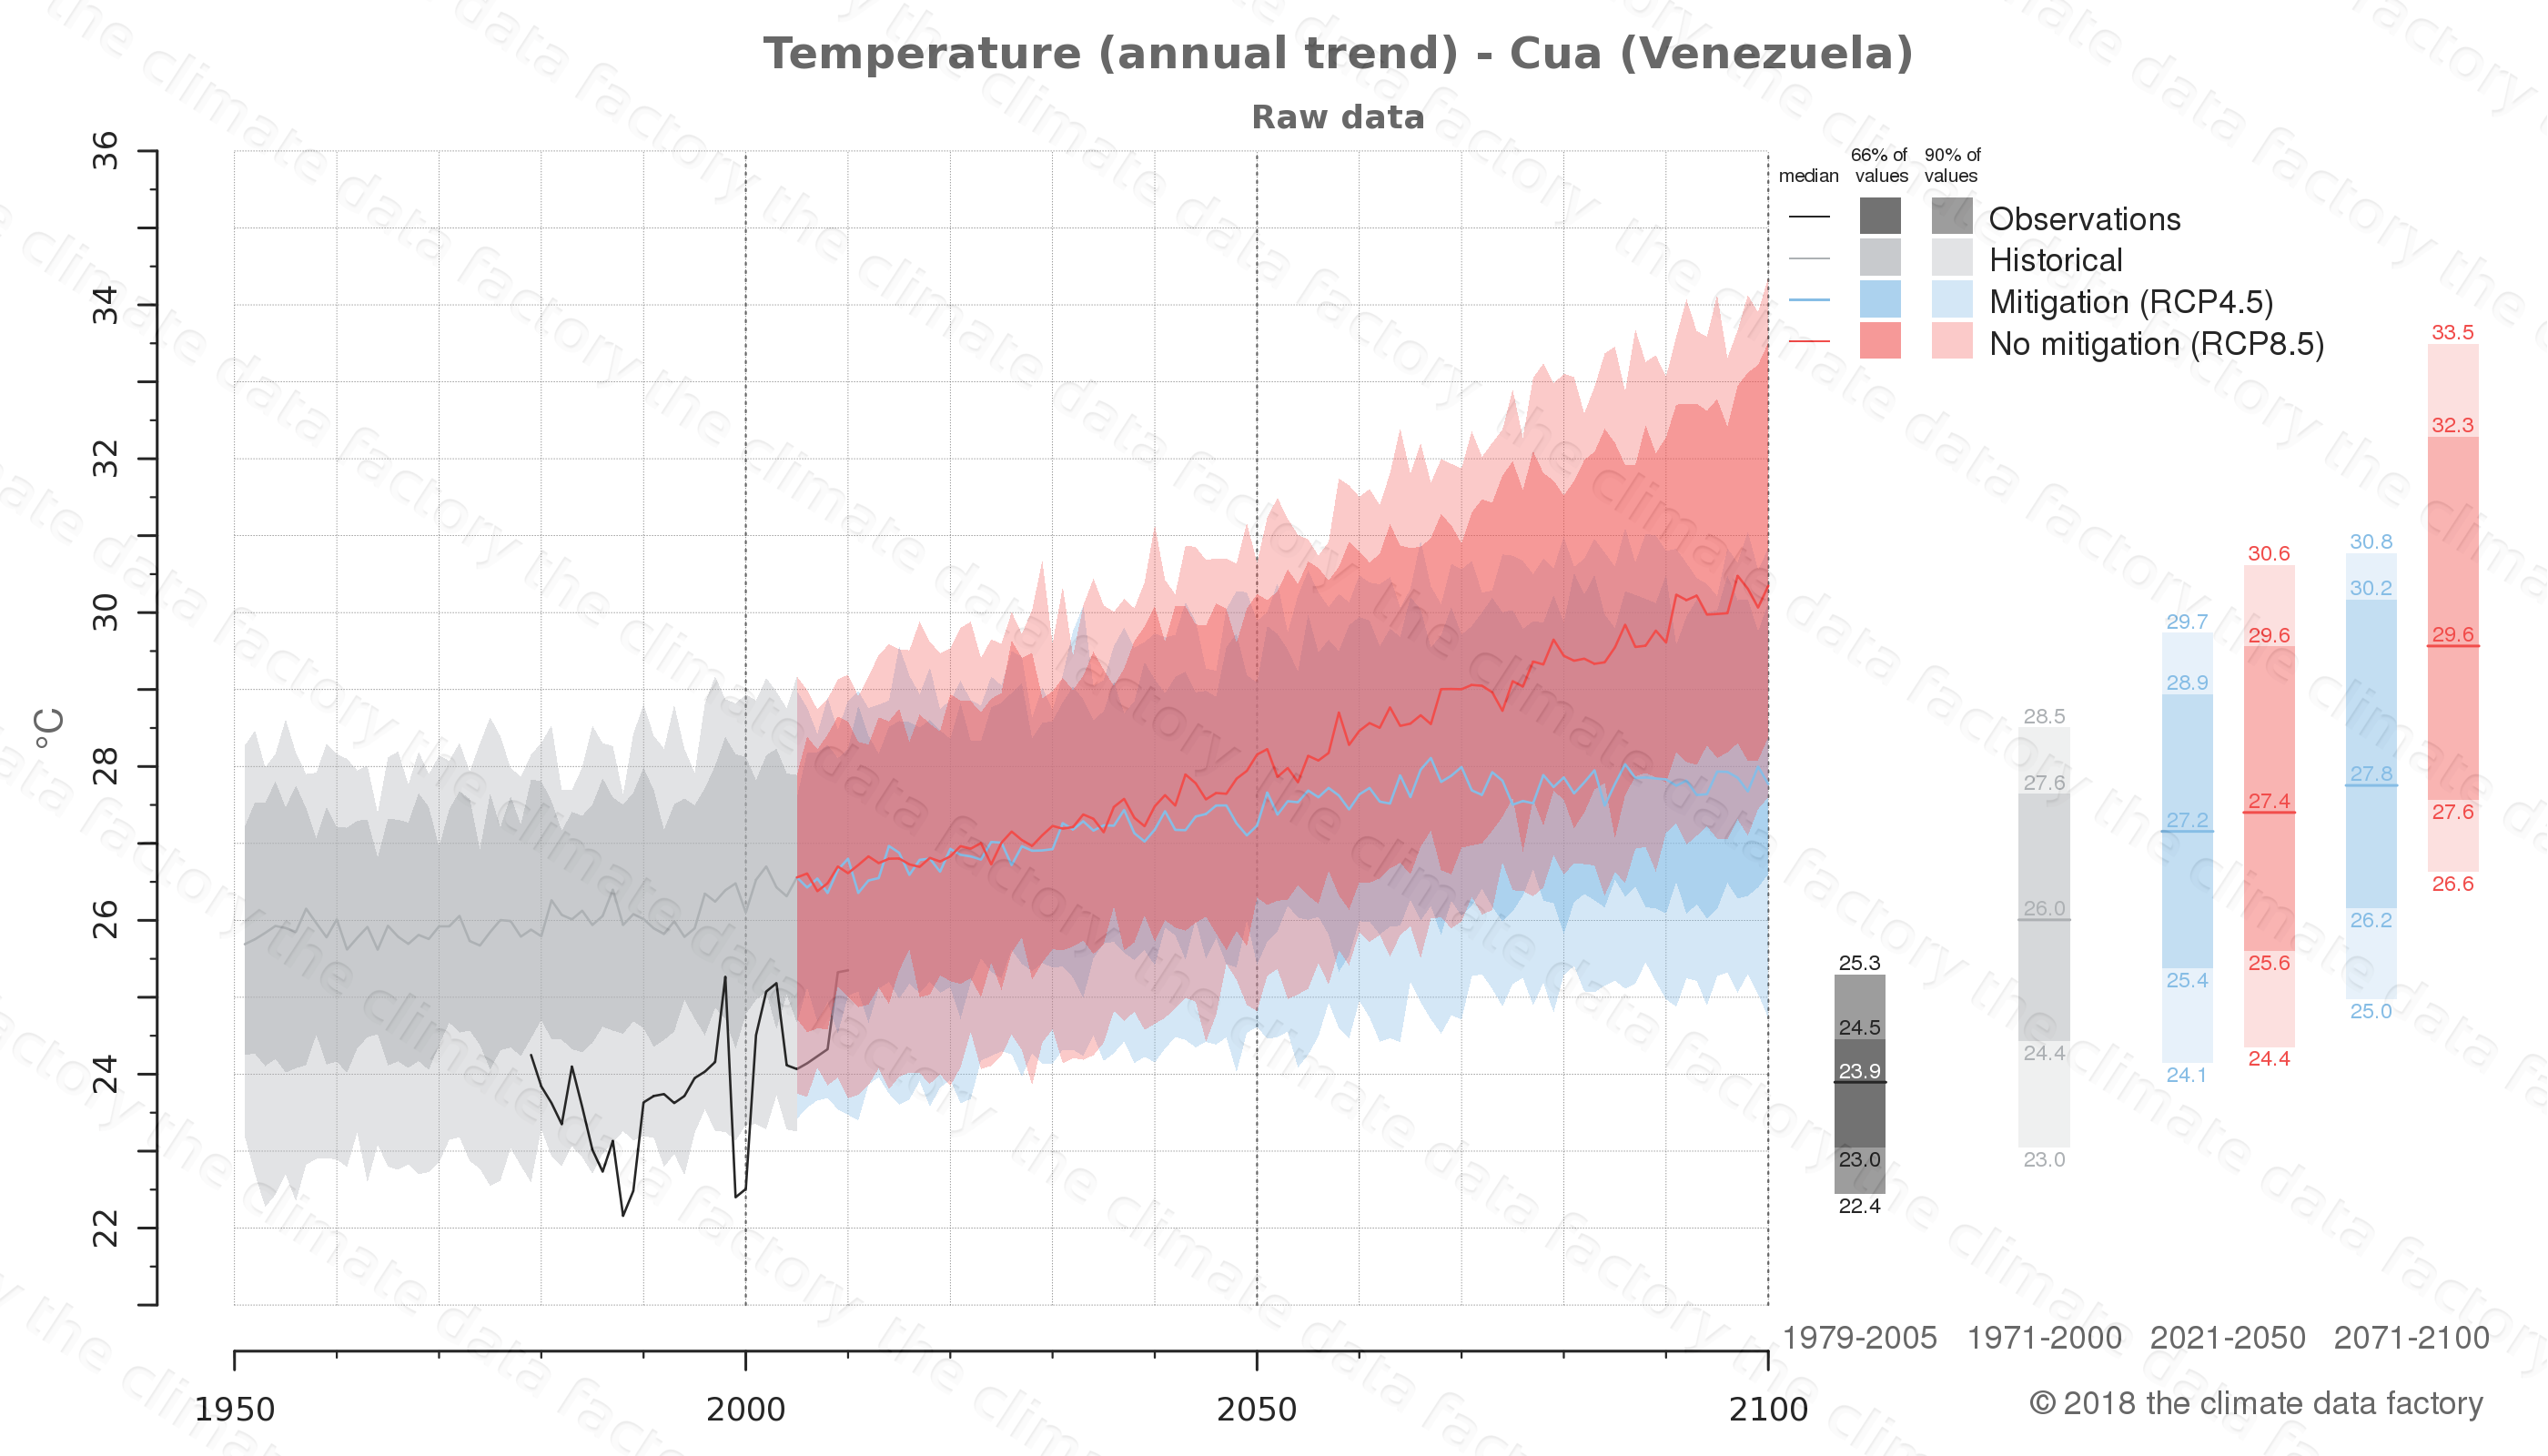 climate change data policy adaptation climate graph city data temperature cua venezuela